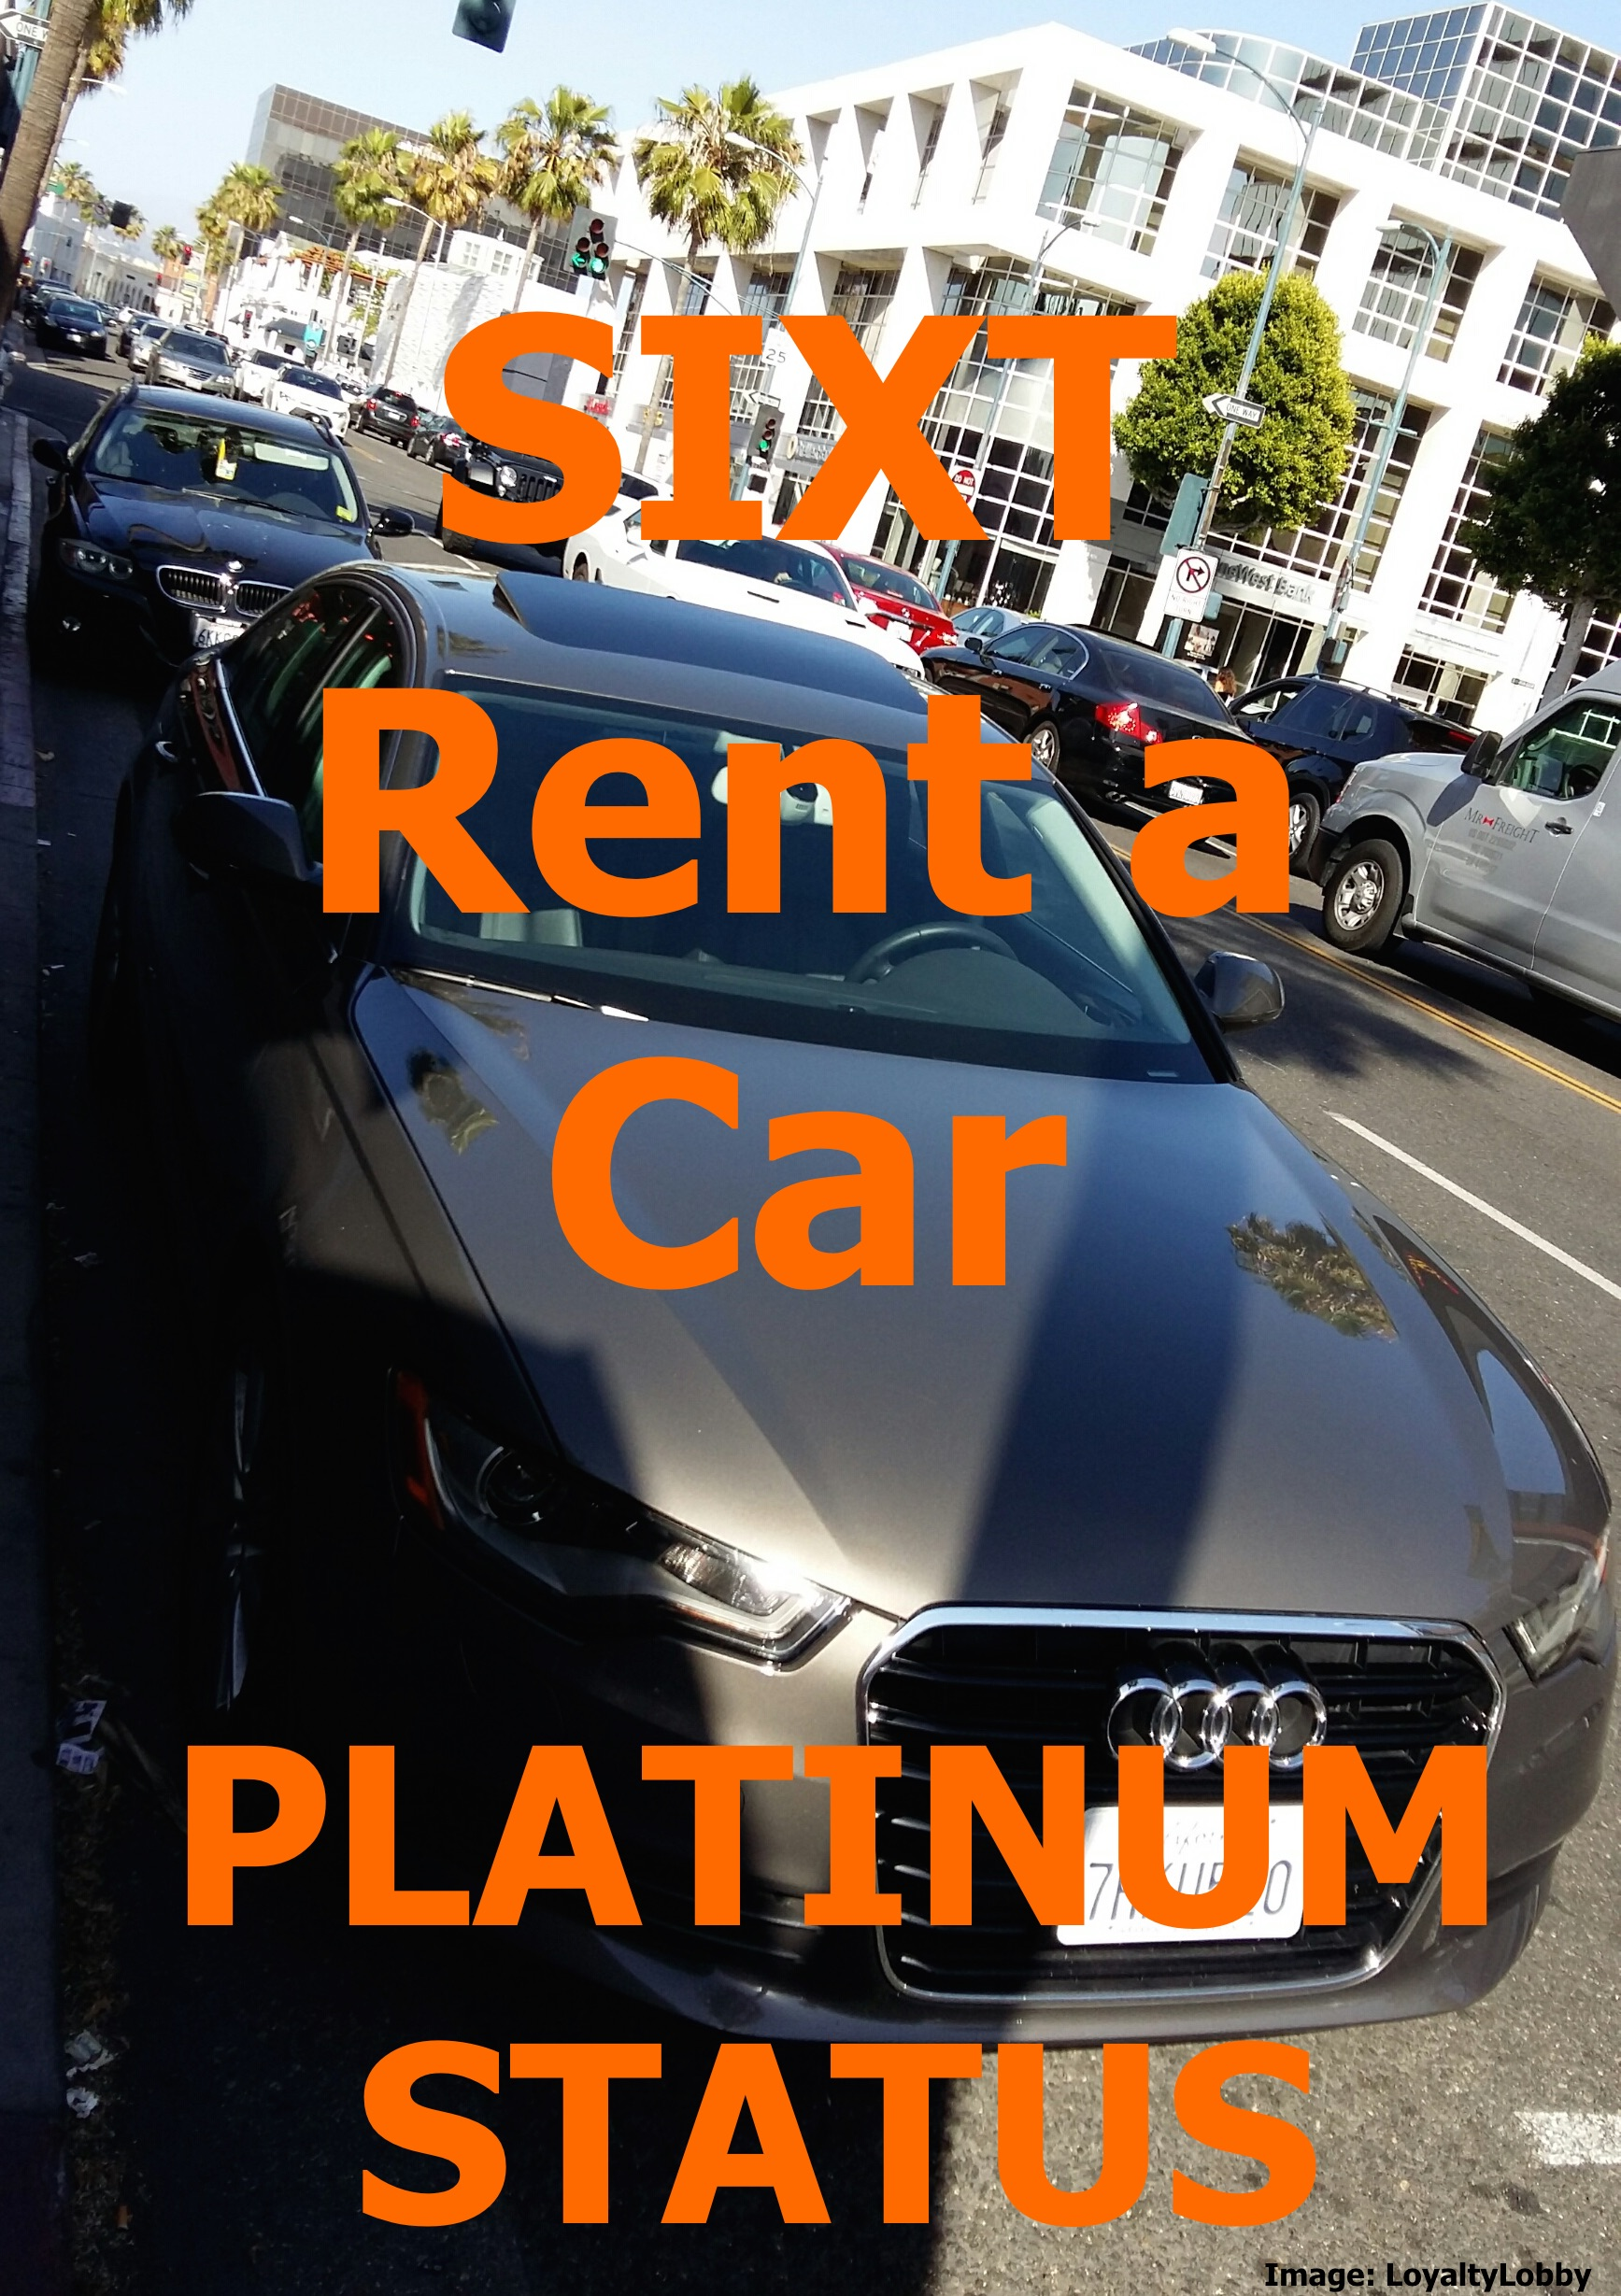 Sixt Rent A Car: Free Platinum / Gold Status Match For